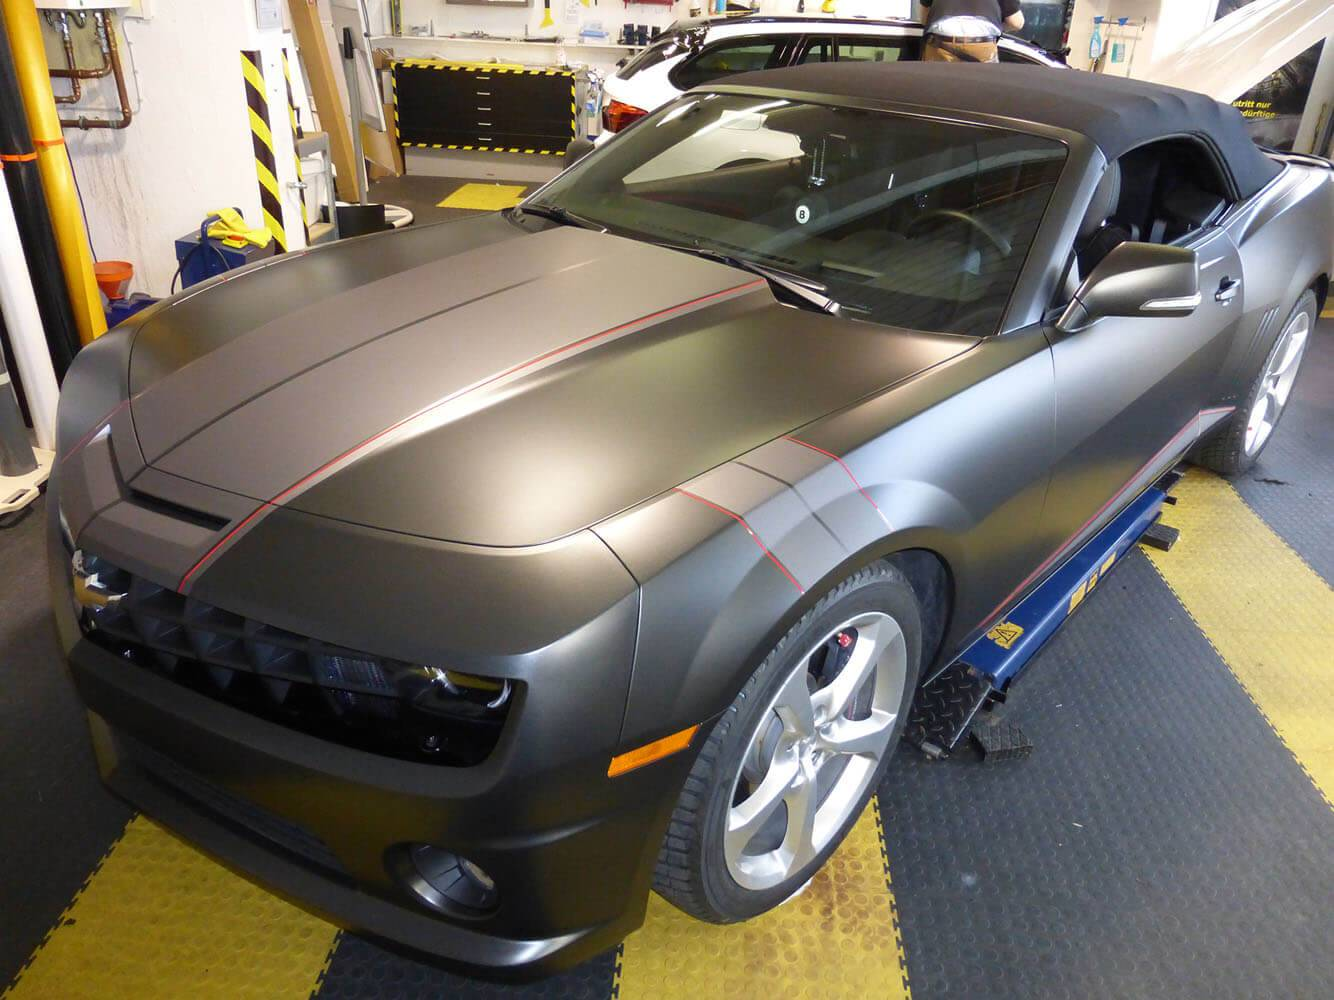 Camaro in diamond black mit roten Designstreifen